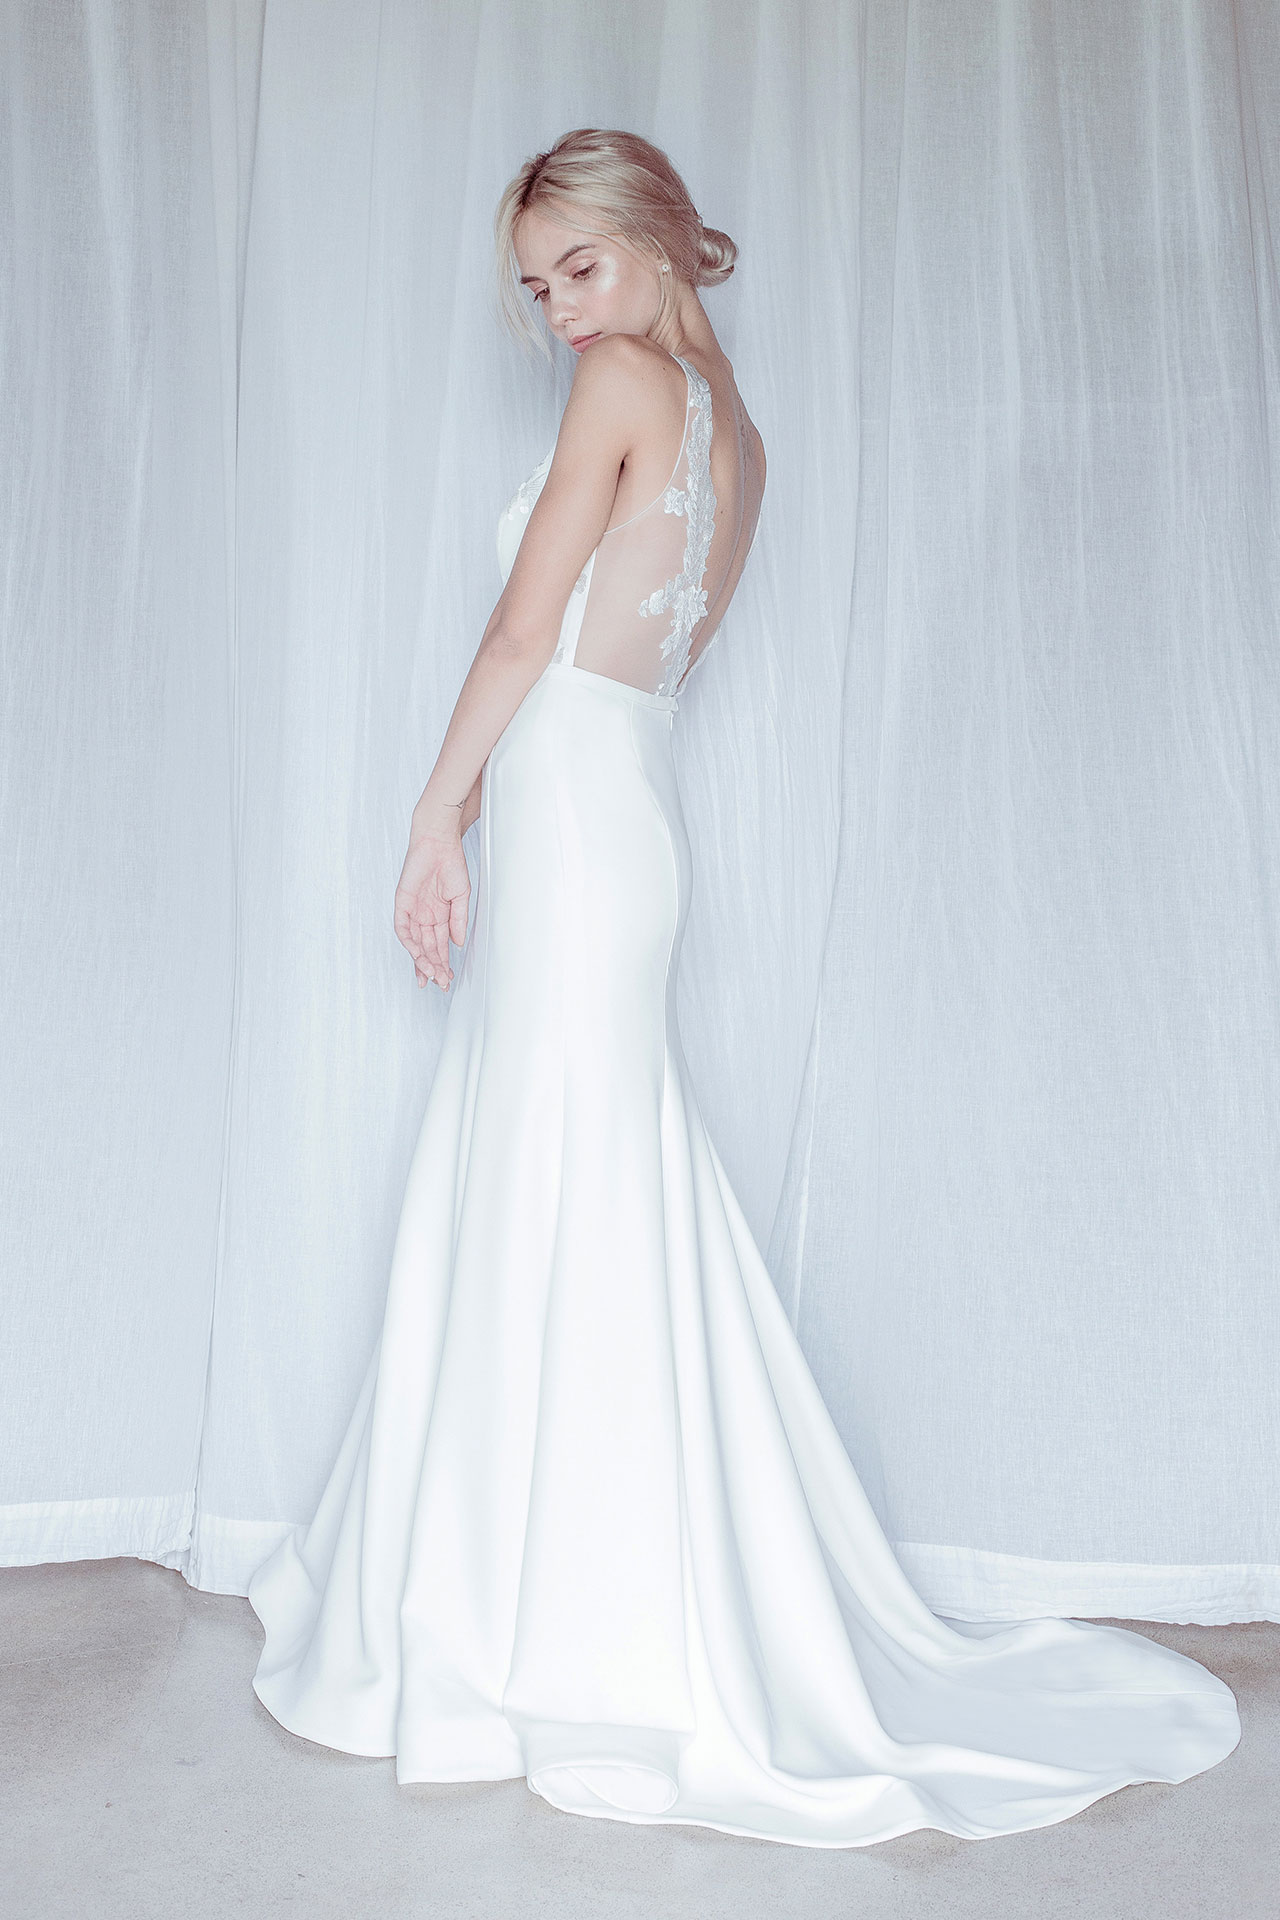 Oui The Label Hamilton Dress | Wedding Dress under $3,000 | LOVE FIND CO. Bridal Directory